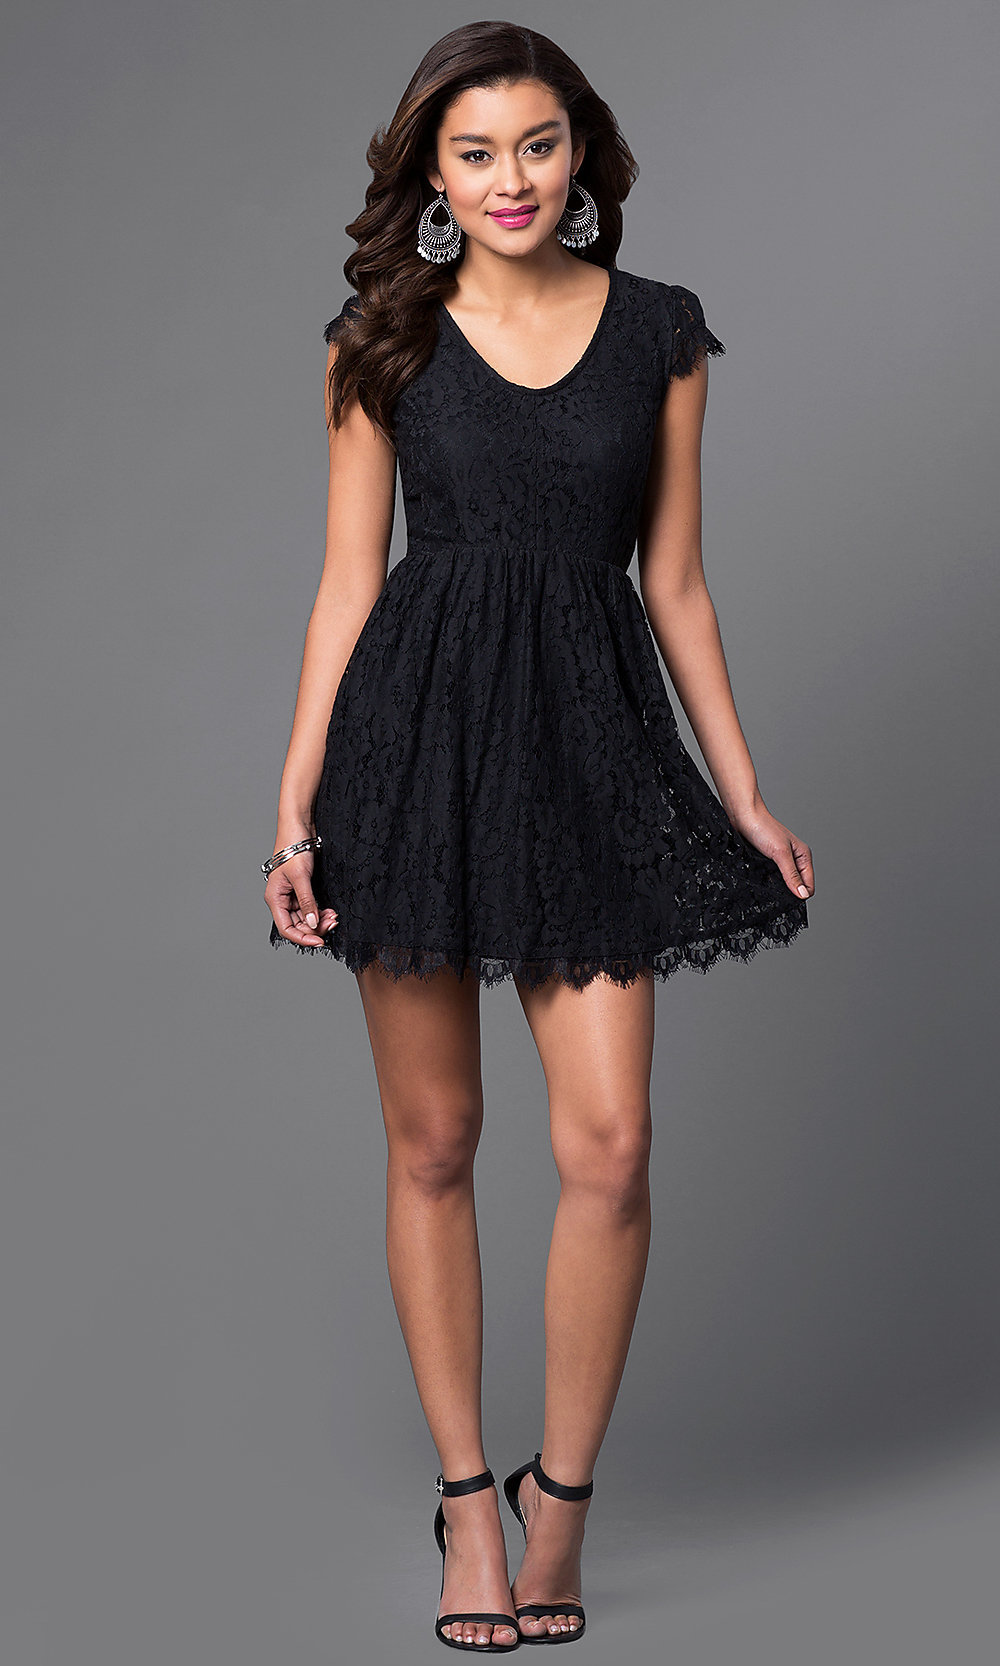 623e2ebe73 Image of black lace scoop-neck short-sleeve homecoming dress. Style: SS.  Tap to expand